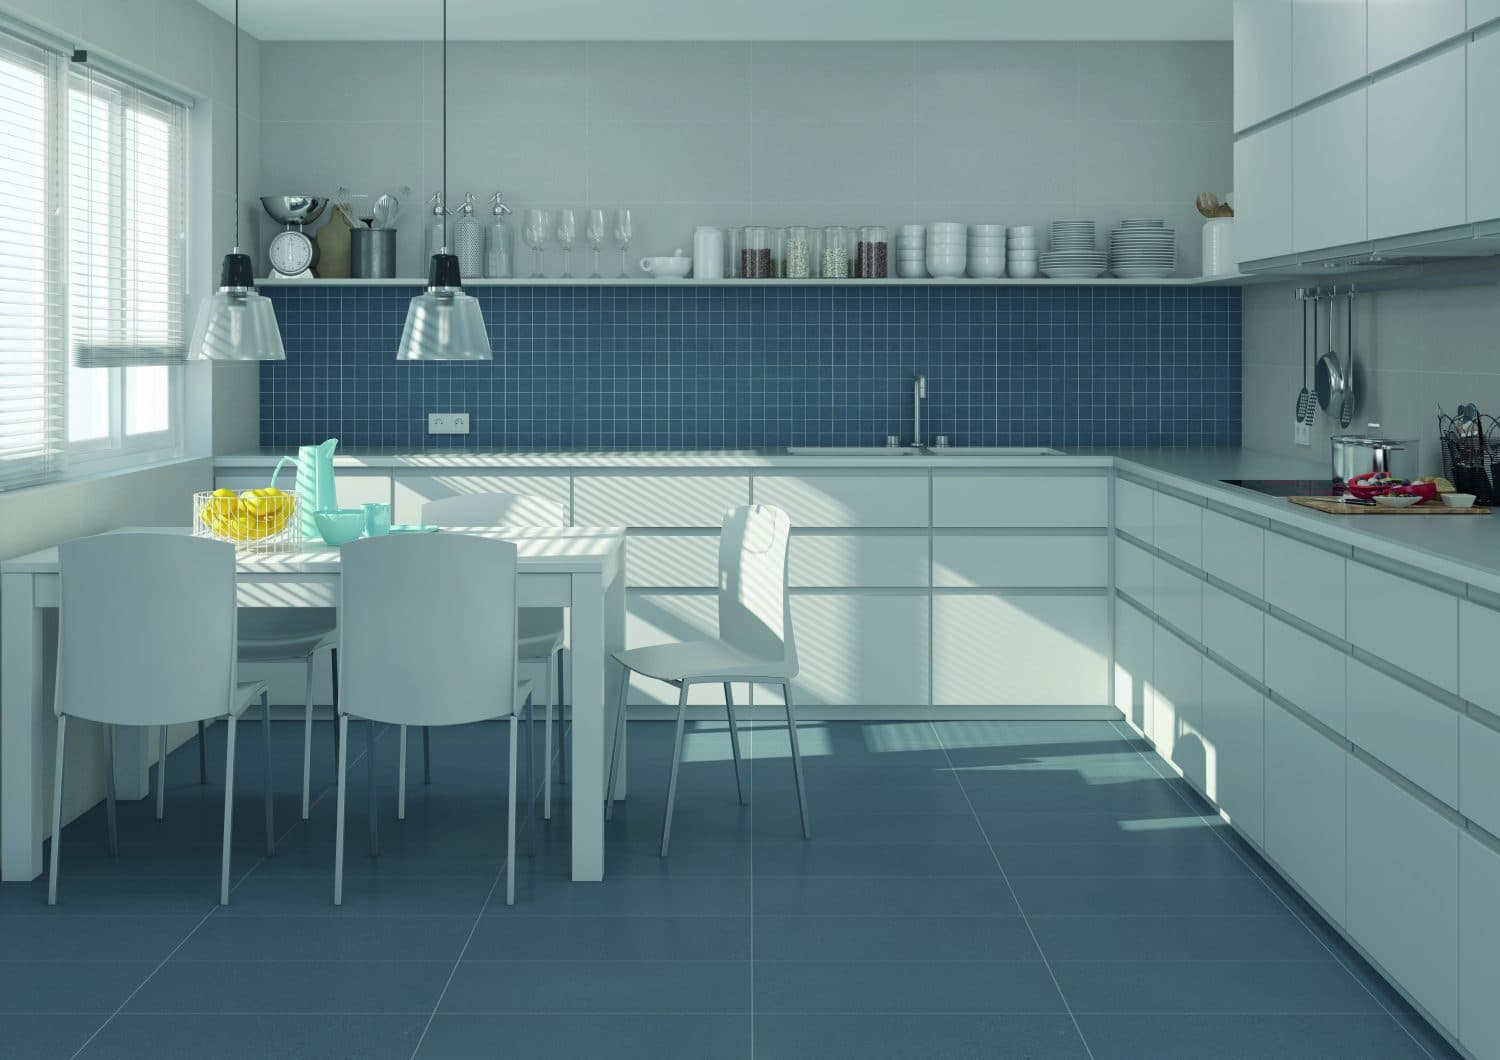 Atlas Ceramics | High Quality Tiles & Tiling Accessories For ...